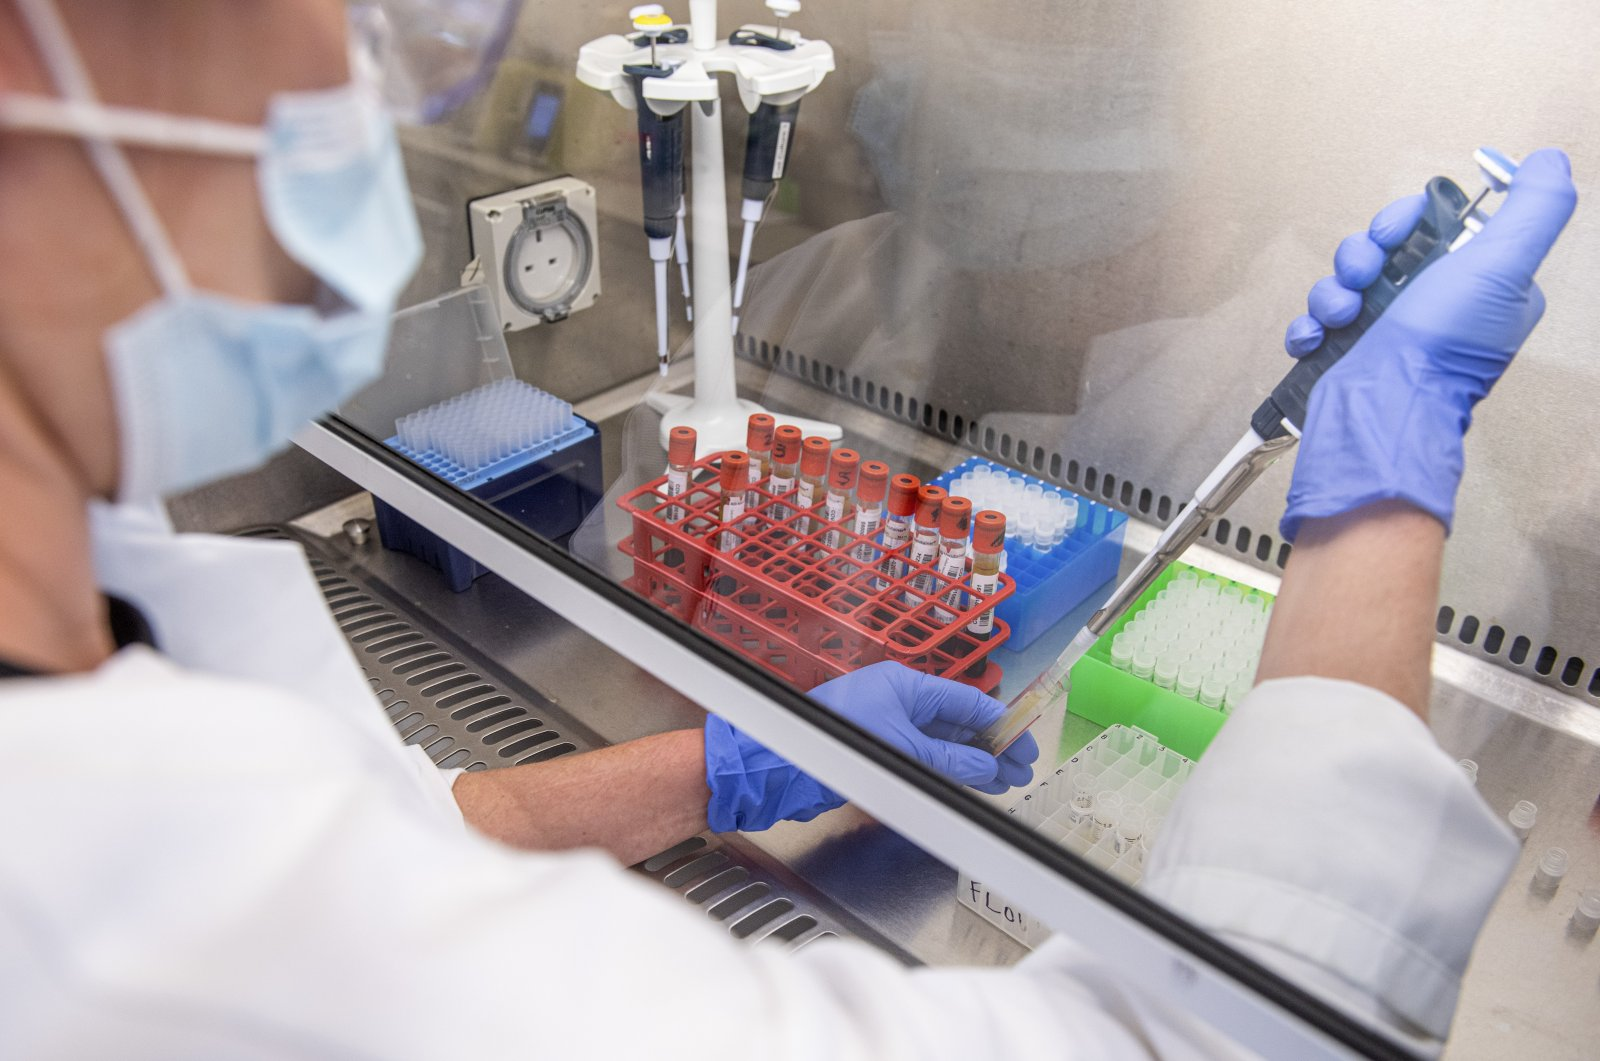 Samples from coronavirus vaccine trials are handled inside the Oxford Vaccine Group laboratory in Oxford, England, June 25, 2020, in this handout photo released by the University of Oxford. (AP Photo)